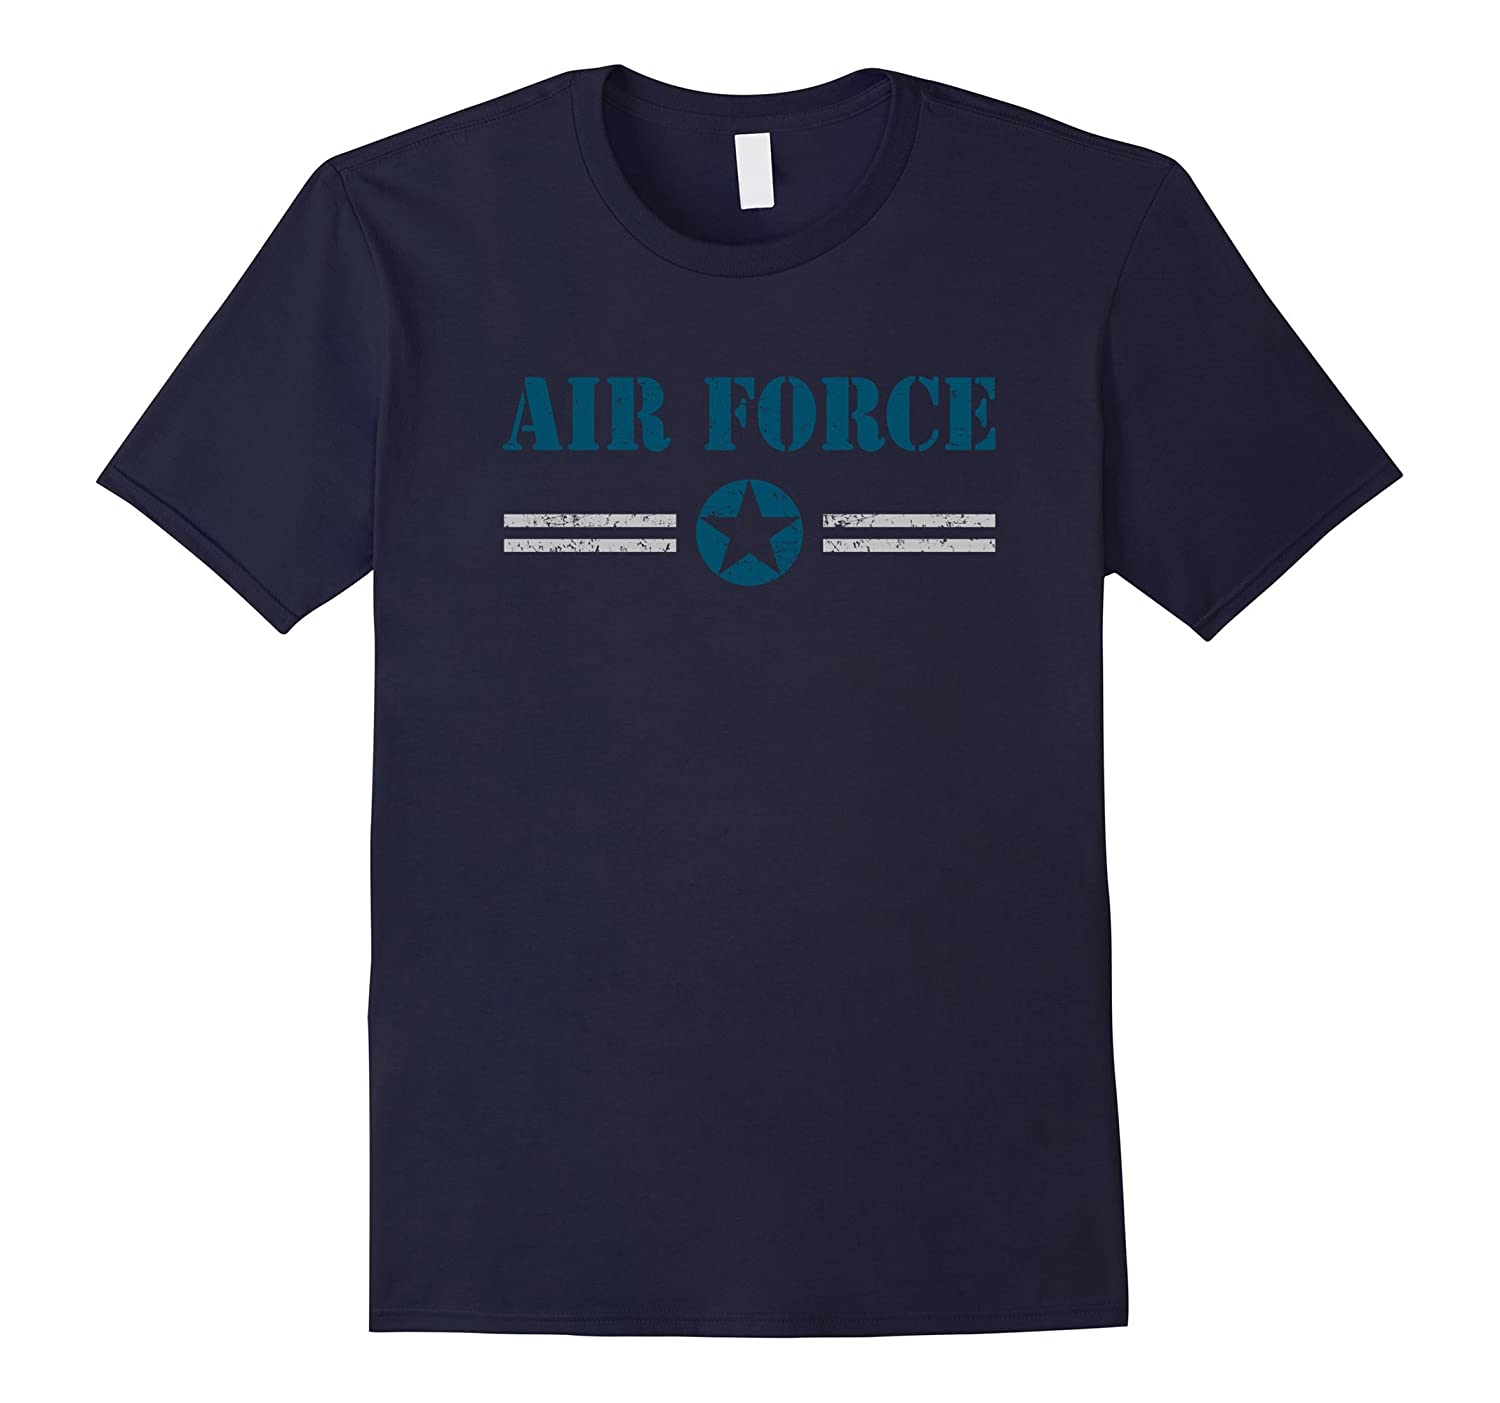 Air Force Distressed T-shirt for Men Women Kids-CD